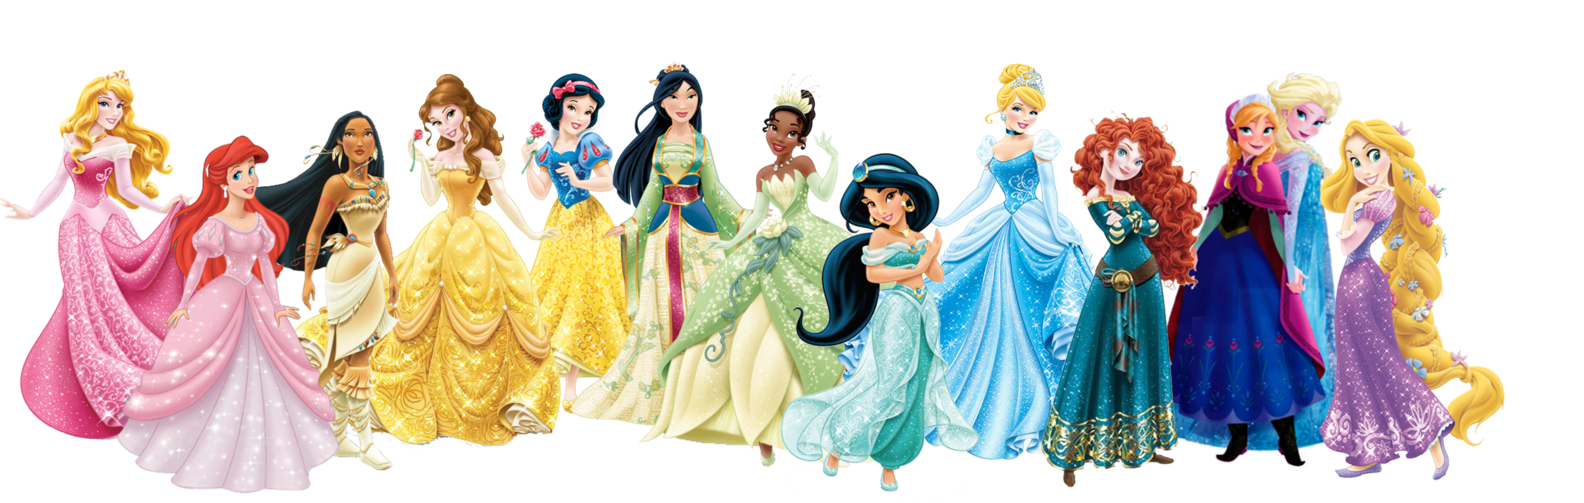 All disney characters png. Image princess lineup degrassi